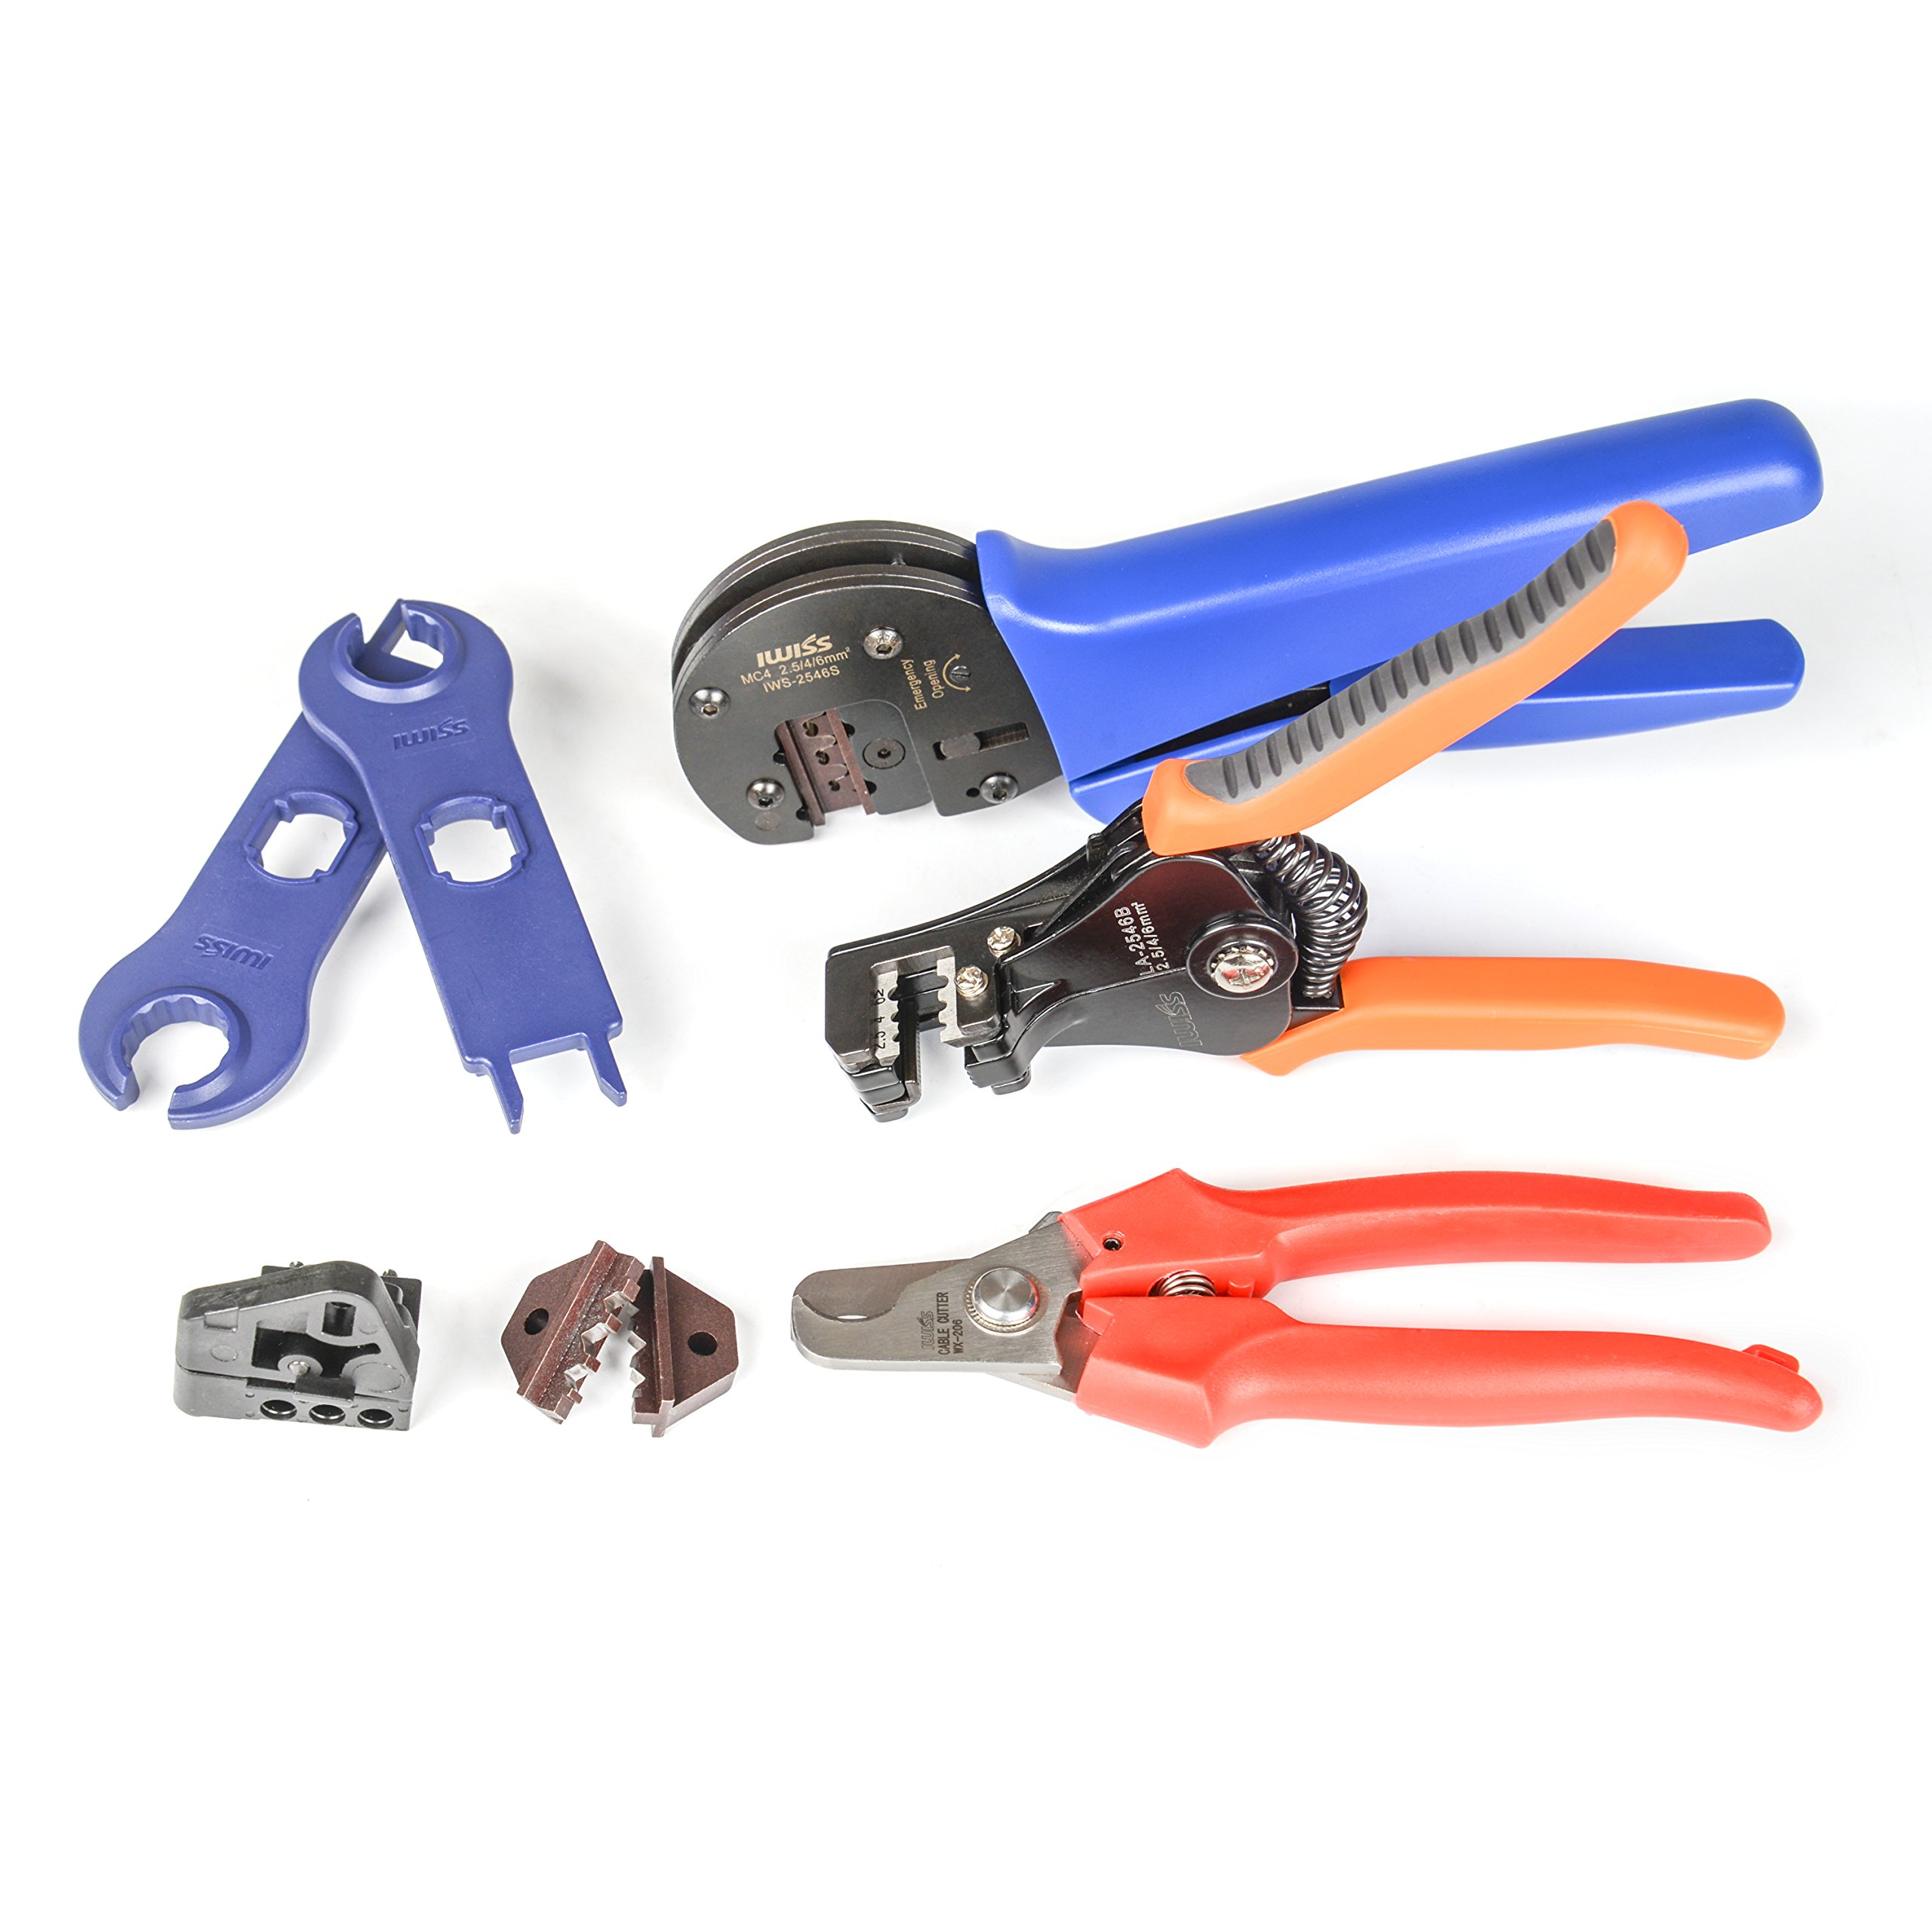 IWISS Solar Crimping Tool Kit with Wire Cable Cutter, Stripper, MC3 MC4 Crimper and MC4 Connectors Assembly and Disassembly Tool Solar PV Panel Tool Kit by IWISS (Image #4)